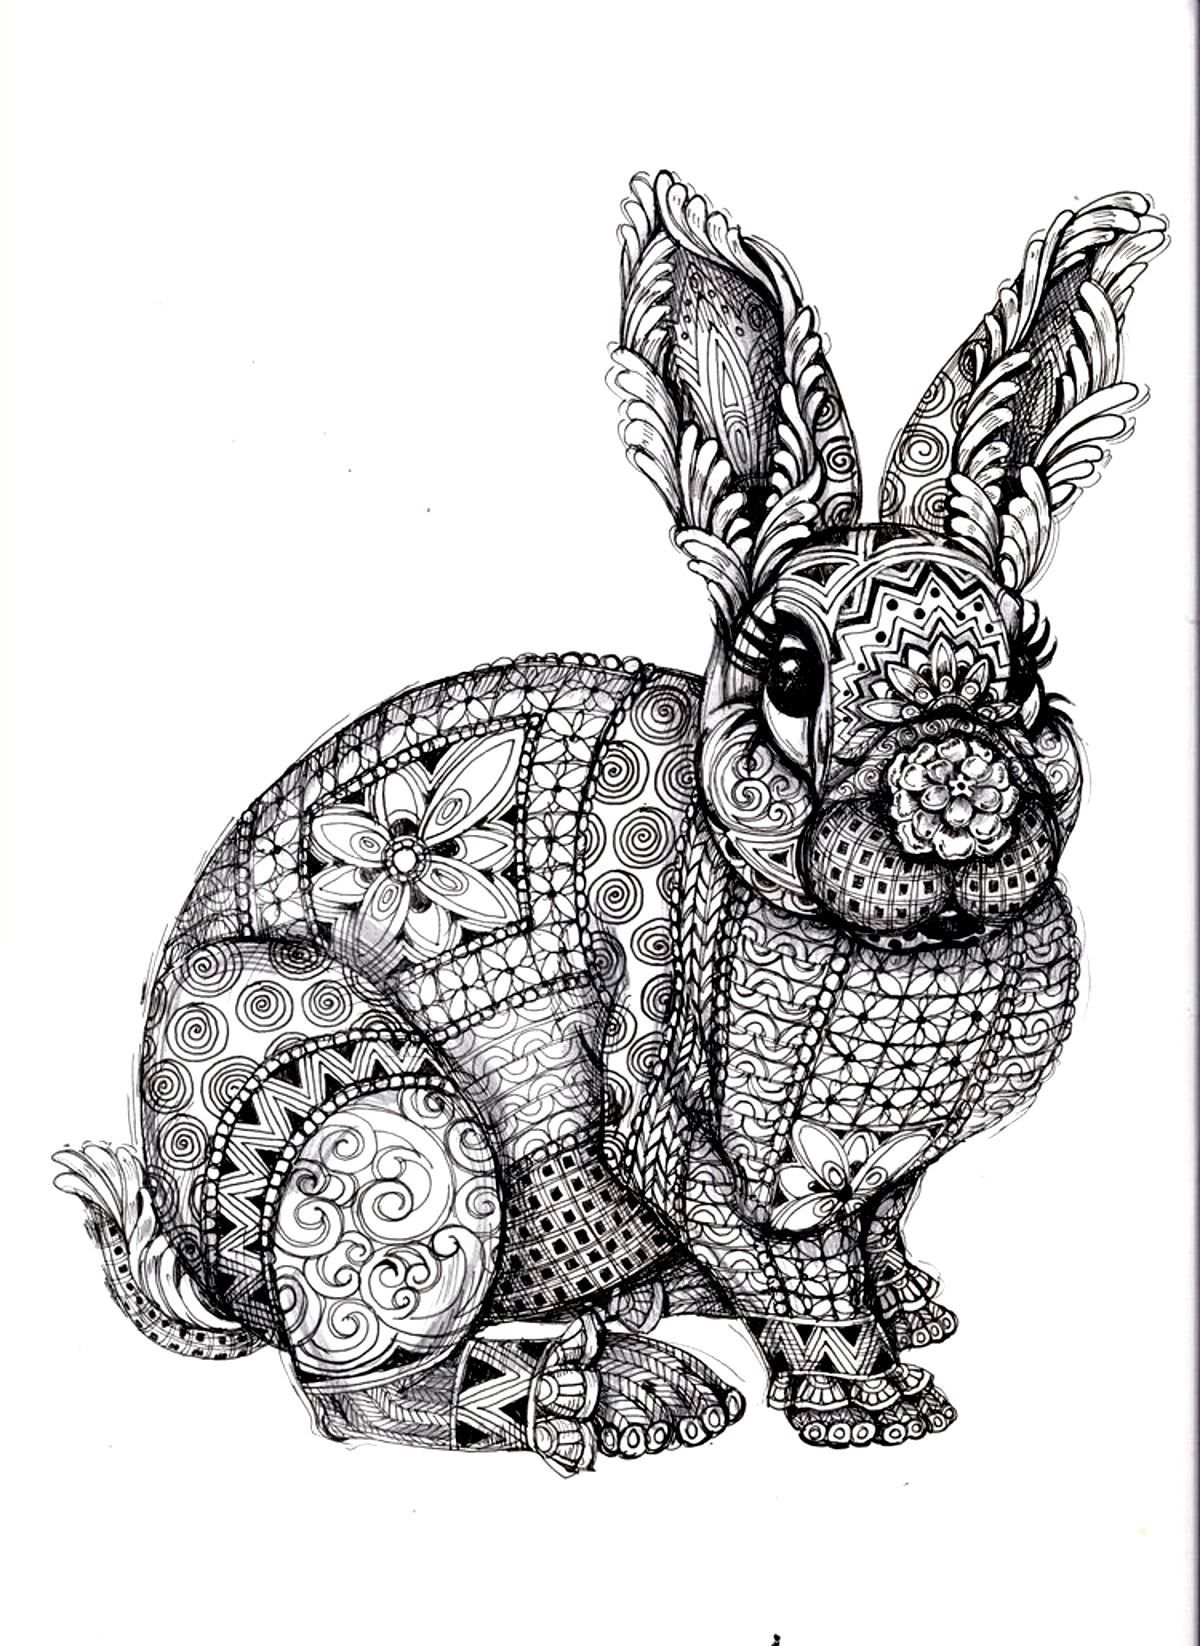 to print this free coloring page coloring adult difficult rabbit click on the printer icon at the right